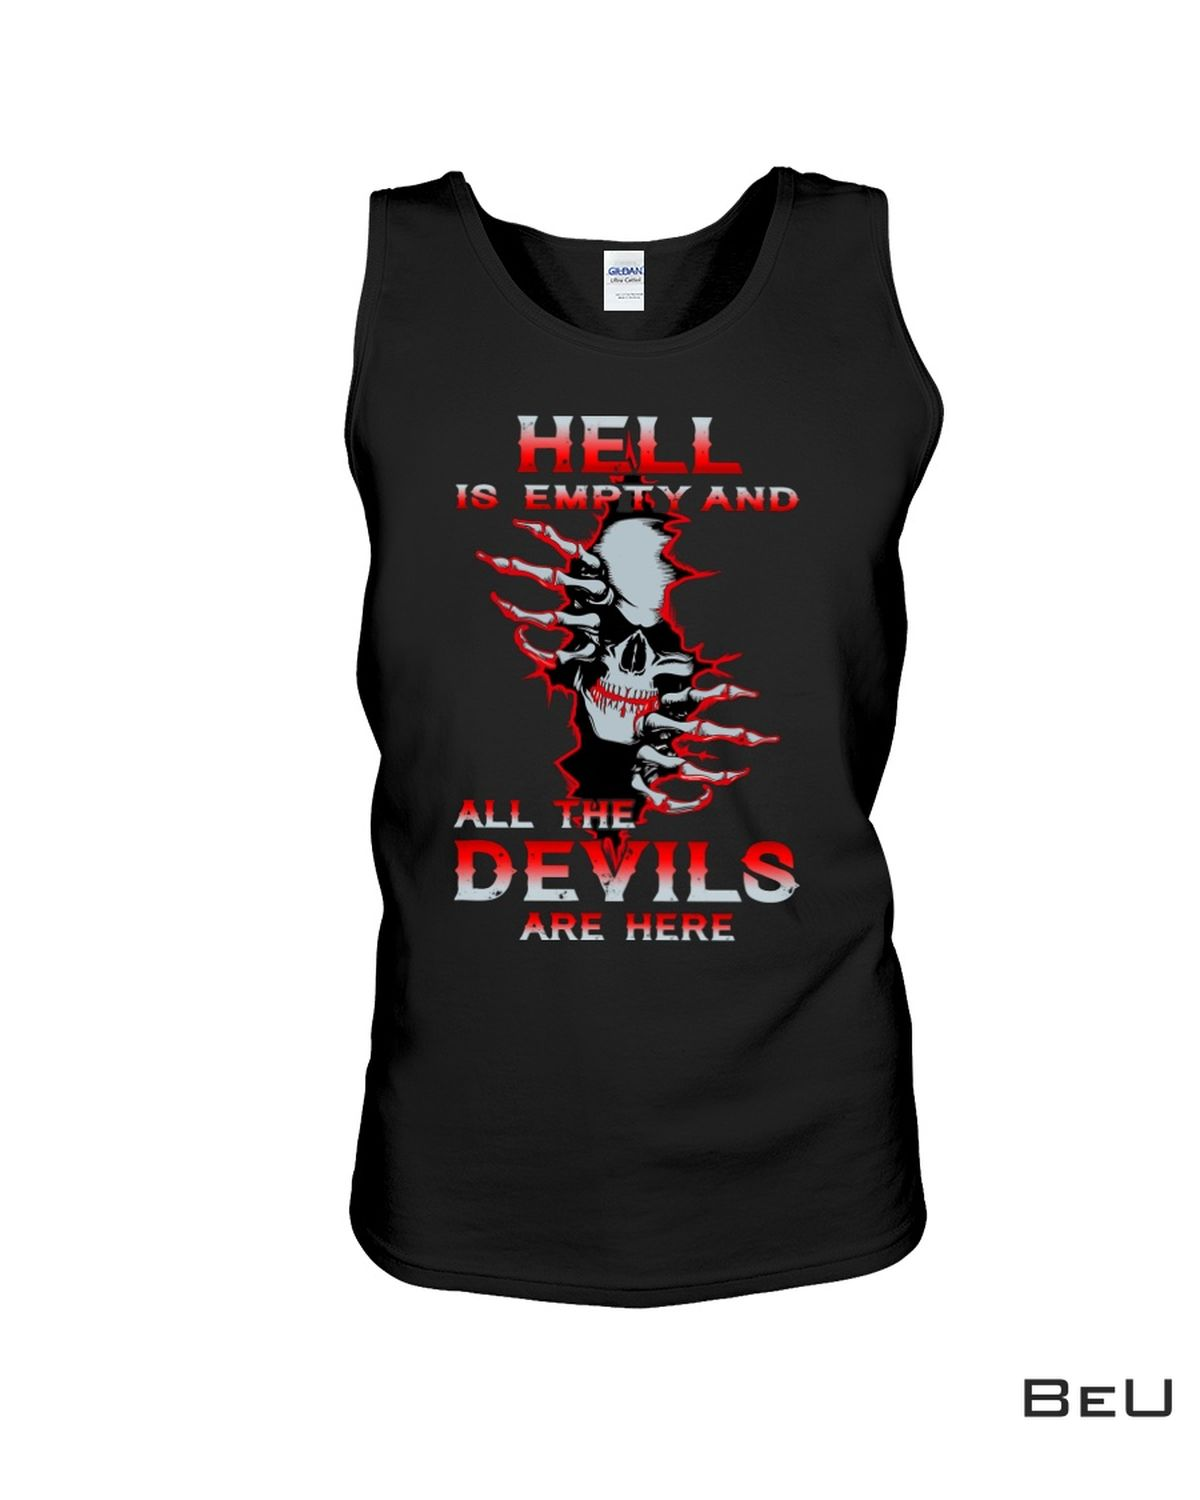 Hell Is Empty And All The Devils Are Here Shirt b